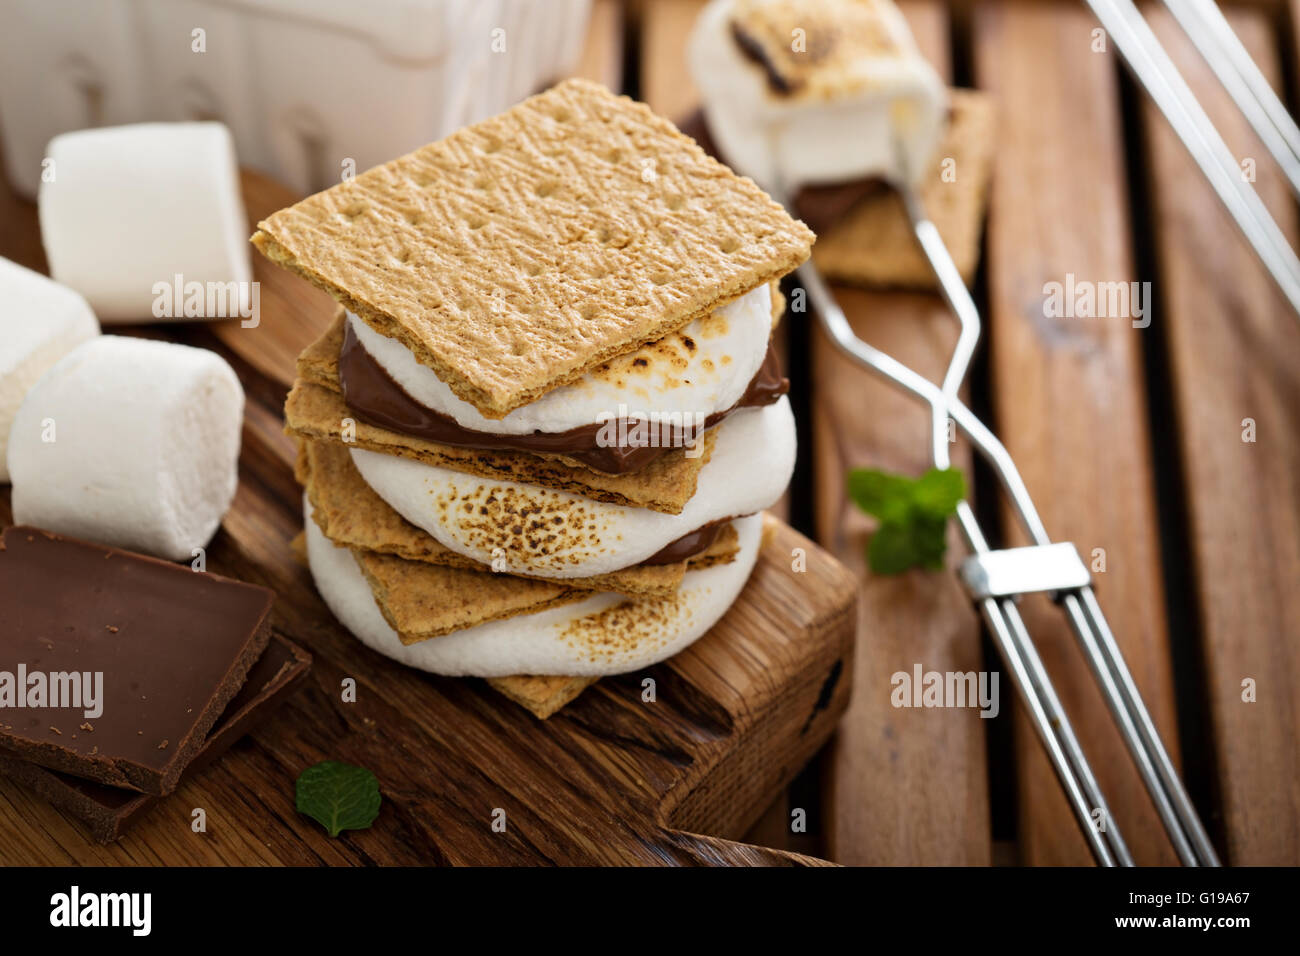 Picnic dessert smores with marshmallows - Stock Image